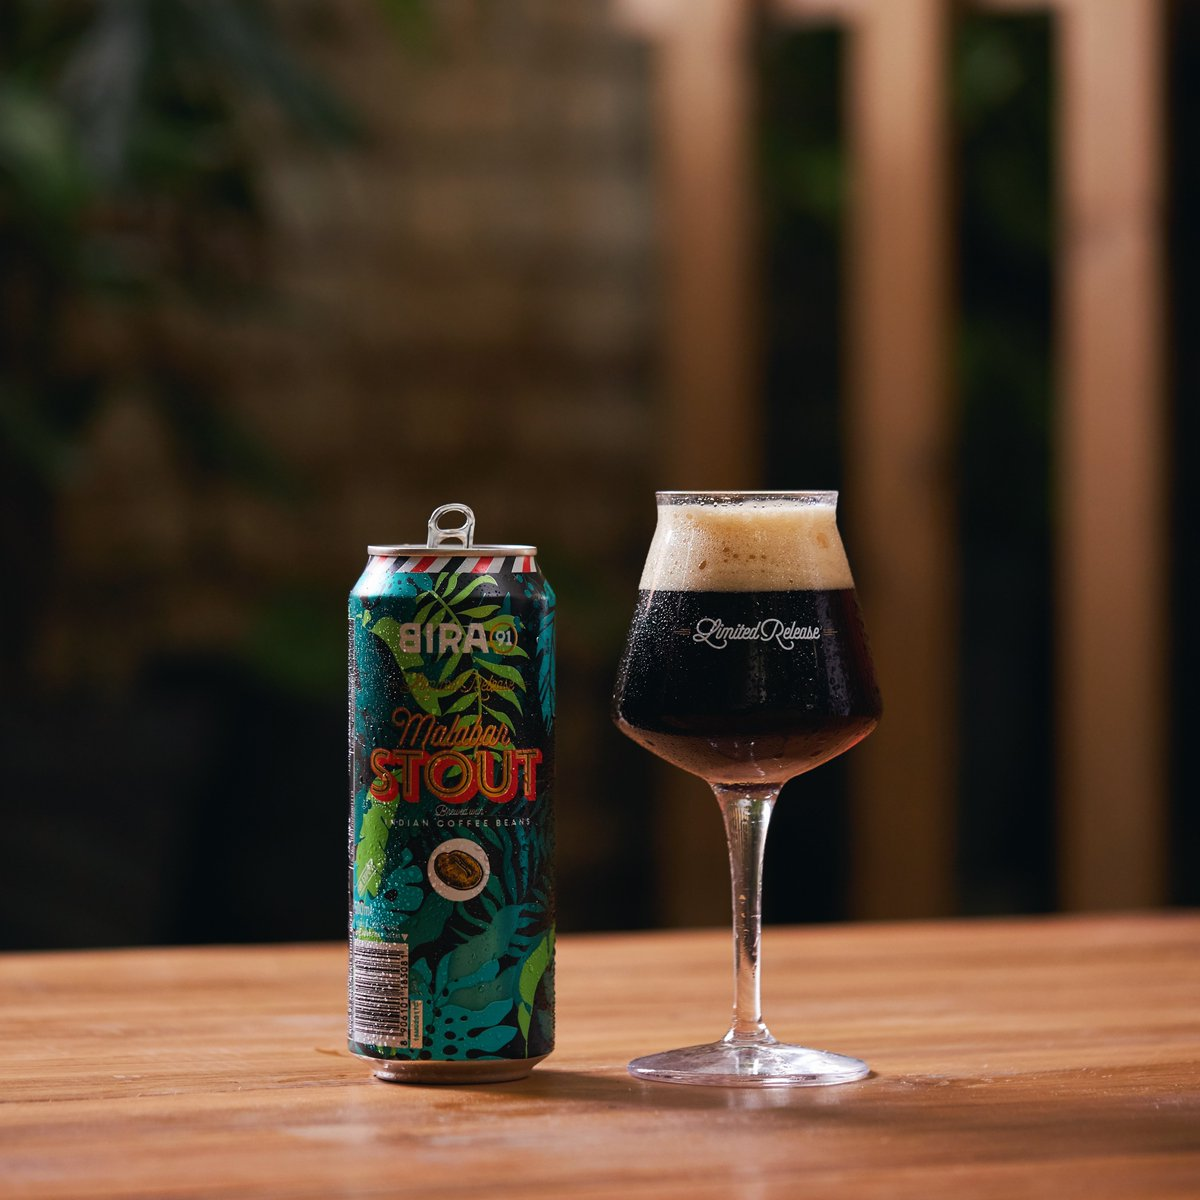 Designed to bring out the complete flavour in every sip, the new Limited Release glass is the only way to enjoy our Malabar Stout. Brewed with coffee sourced locally, our Stout will take your beer drinking experience to a whole new level!🍻..#Bira91MalabarStout #Bira91Beers